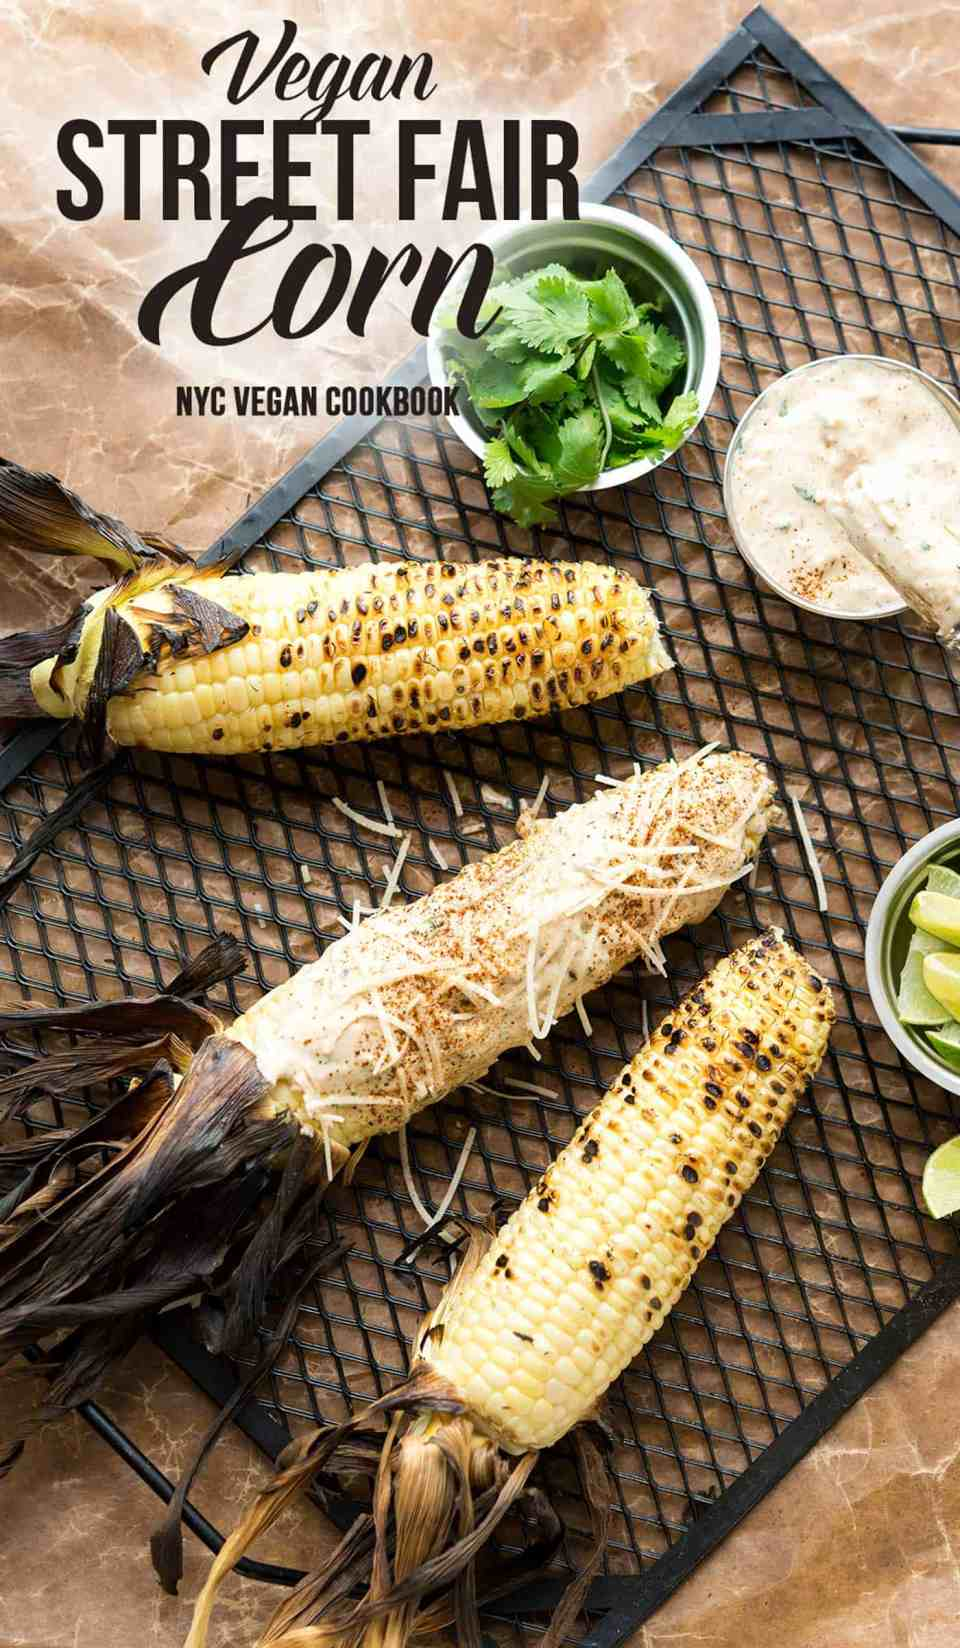 Street Fair Corn from the NYC Vegan Cookbook! Grilled corn slathered in a creamy sauce, vegan parmesan and lime juice. Yum! #glutenfree #dairyfree #vegan